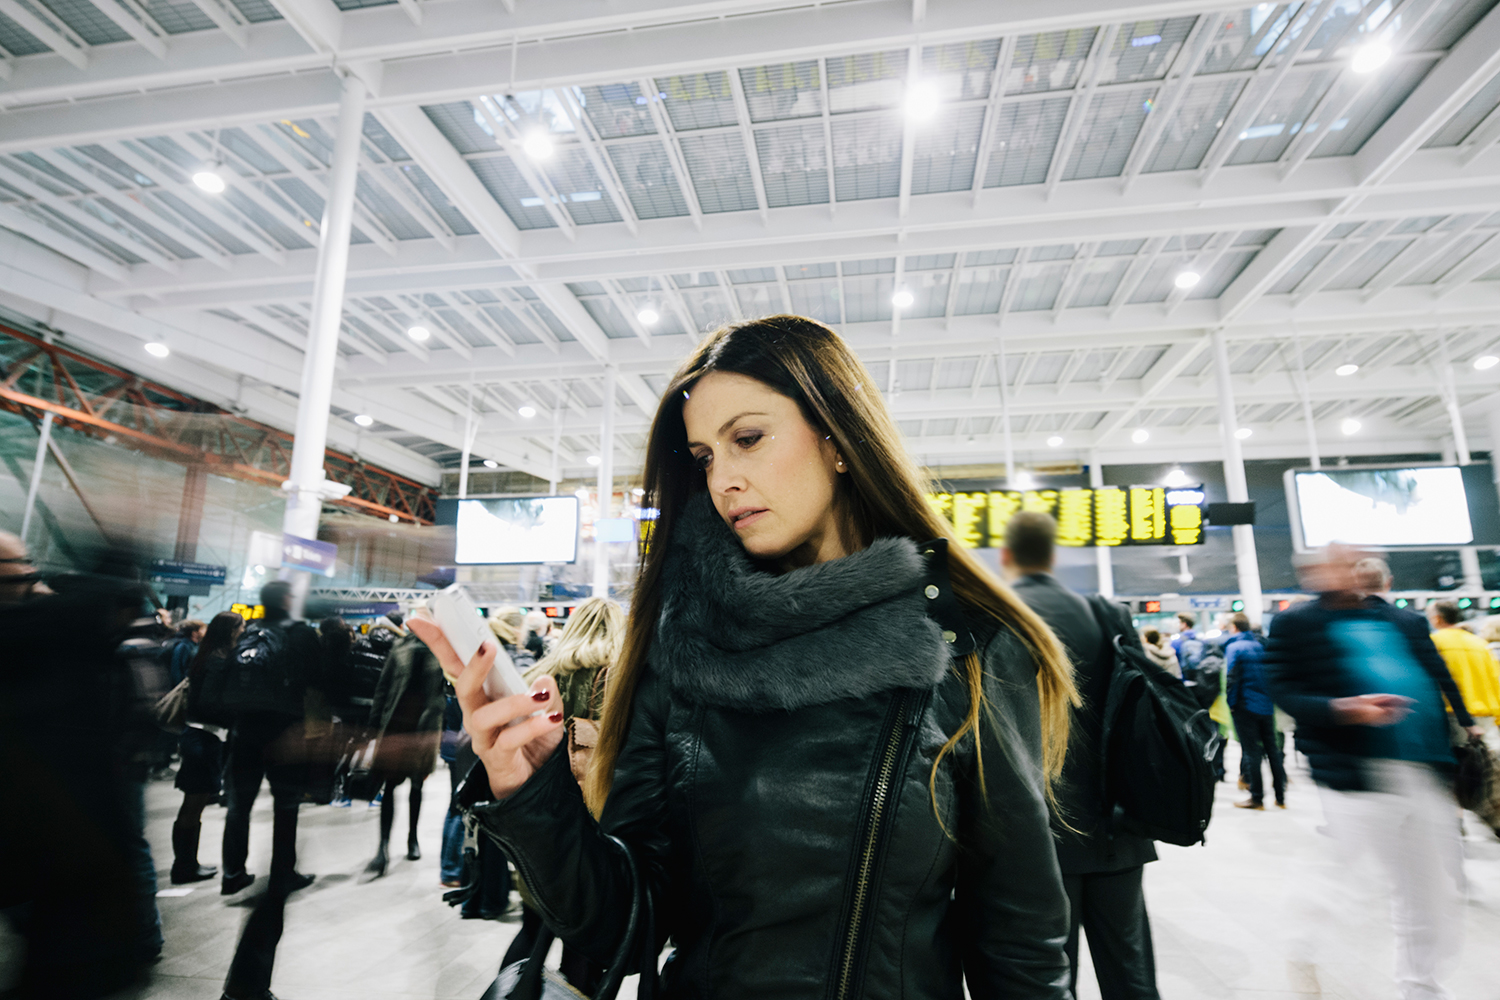 Woman at Busy Airport